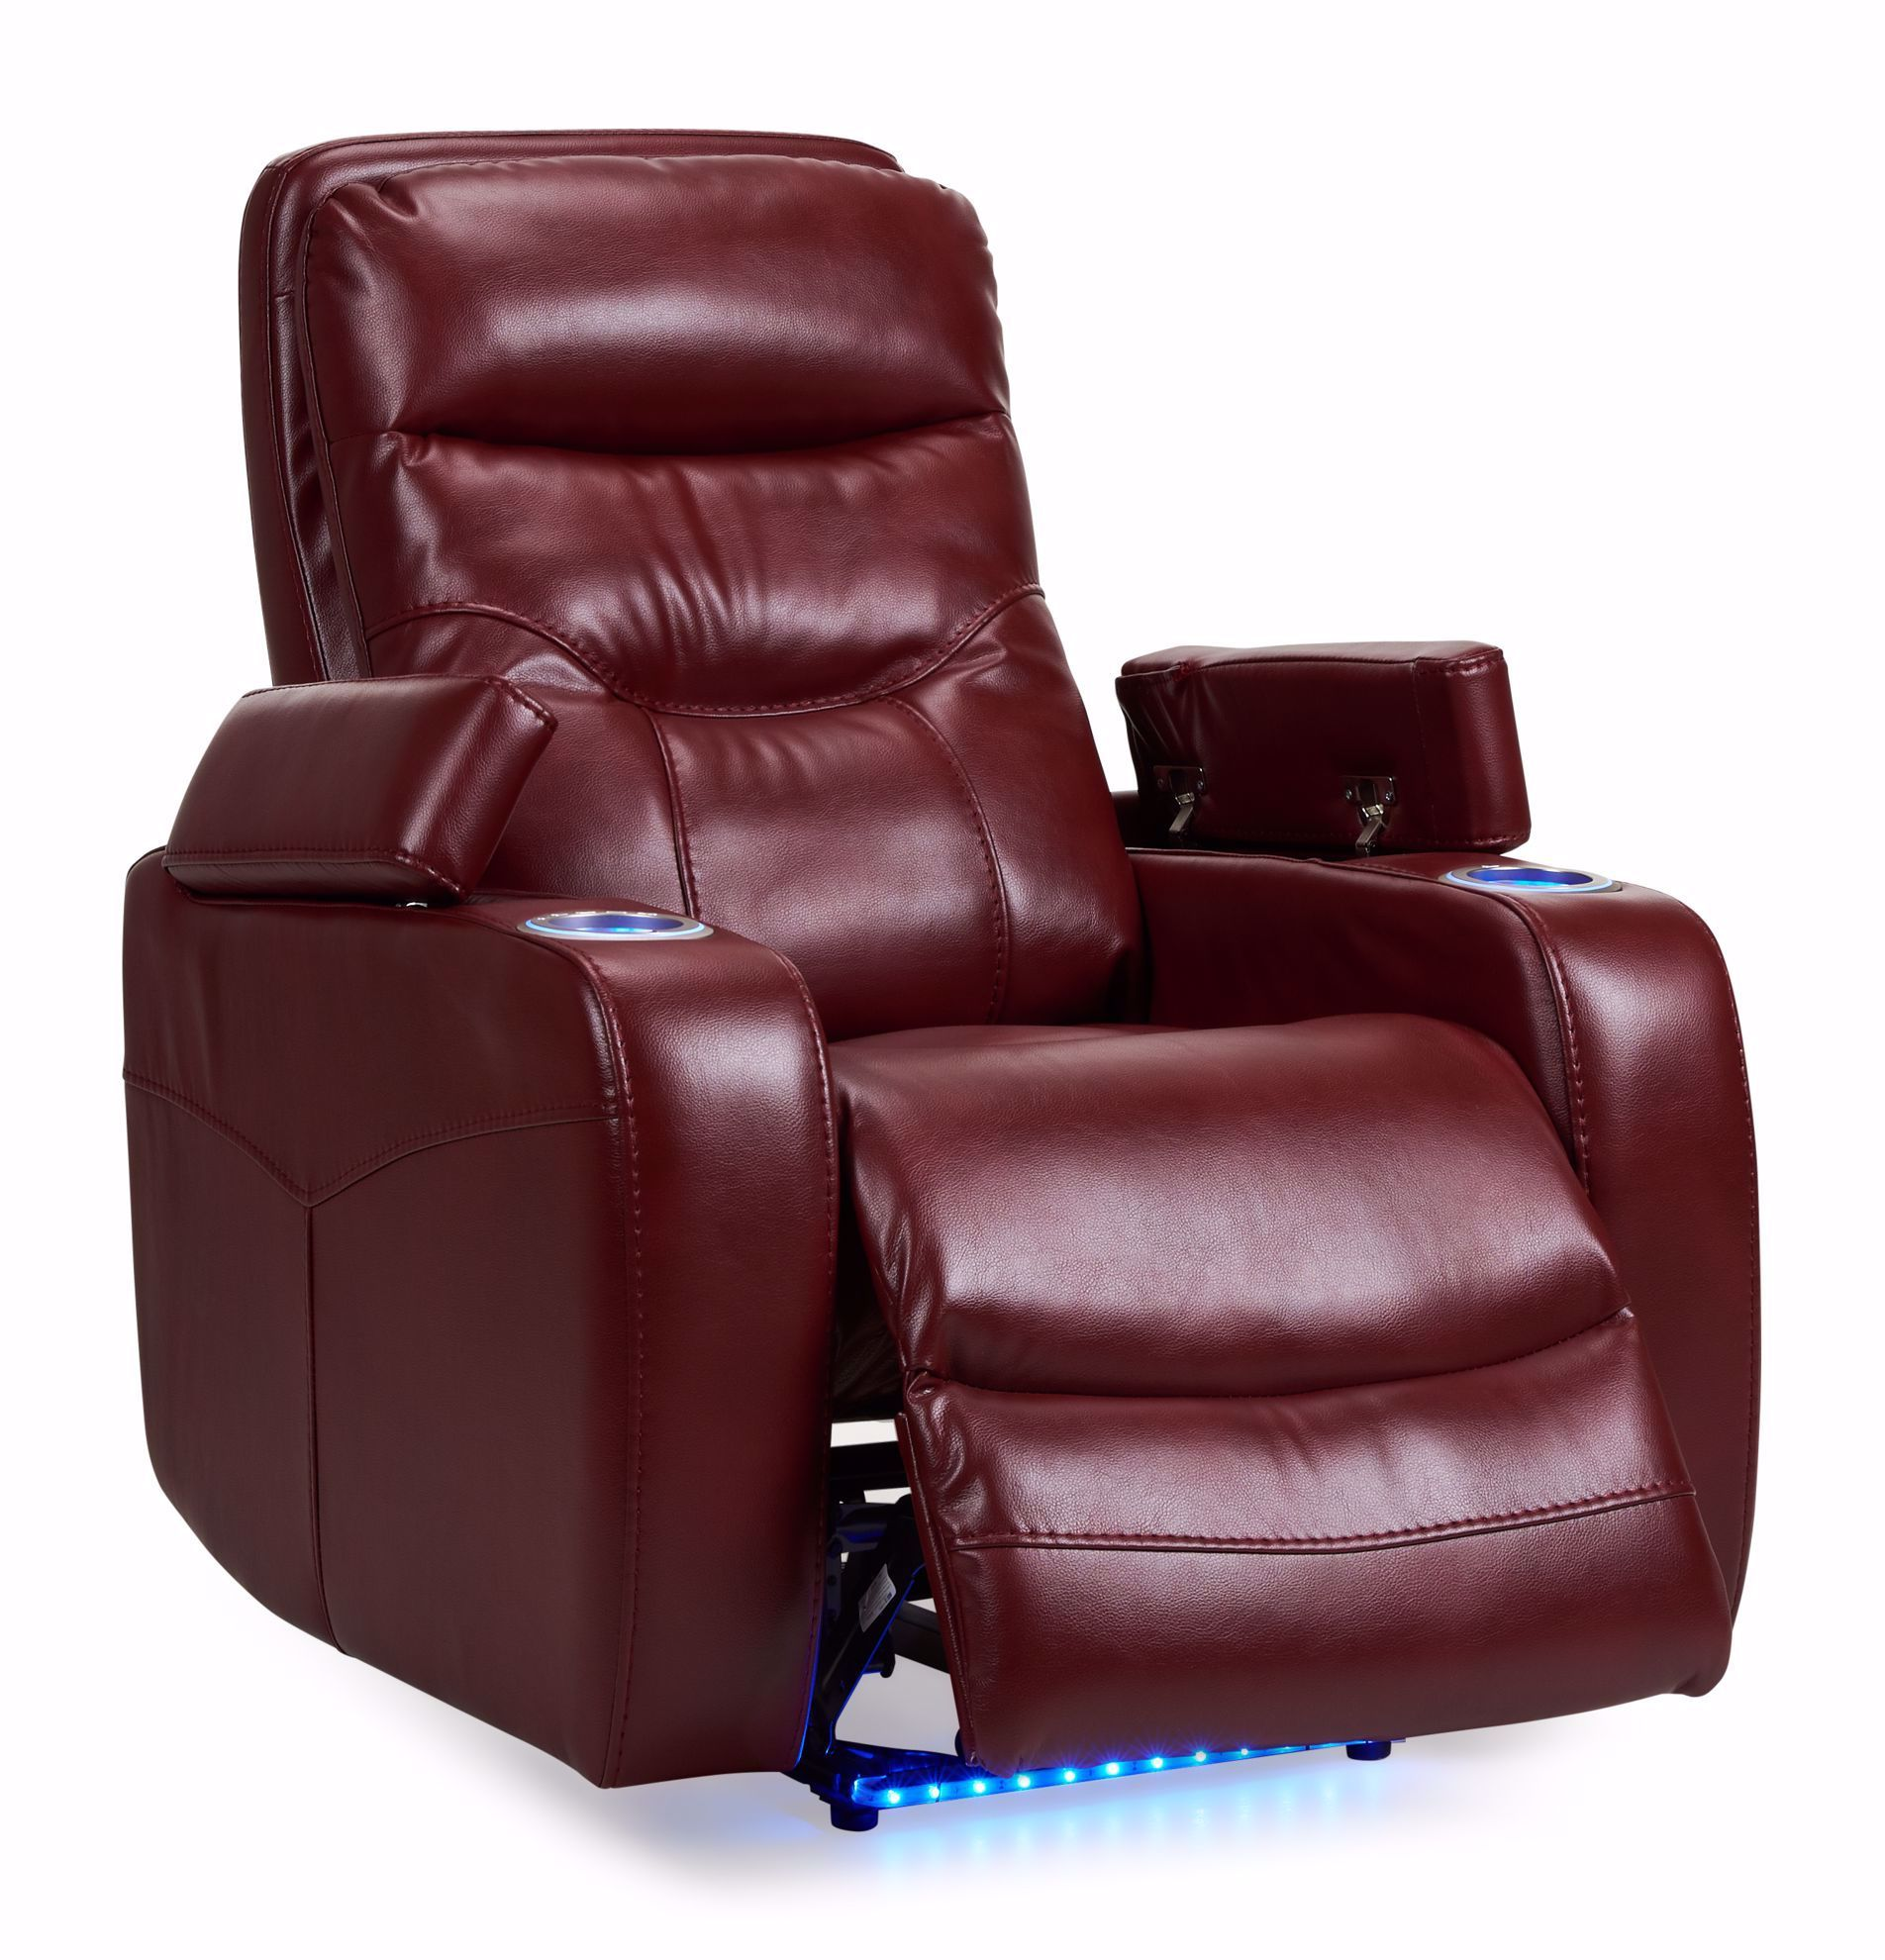 Picture of Odessa Red Power Recliner With Lights